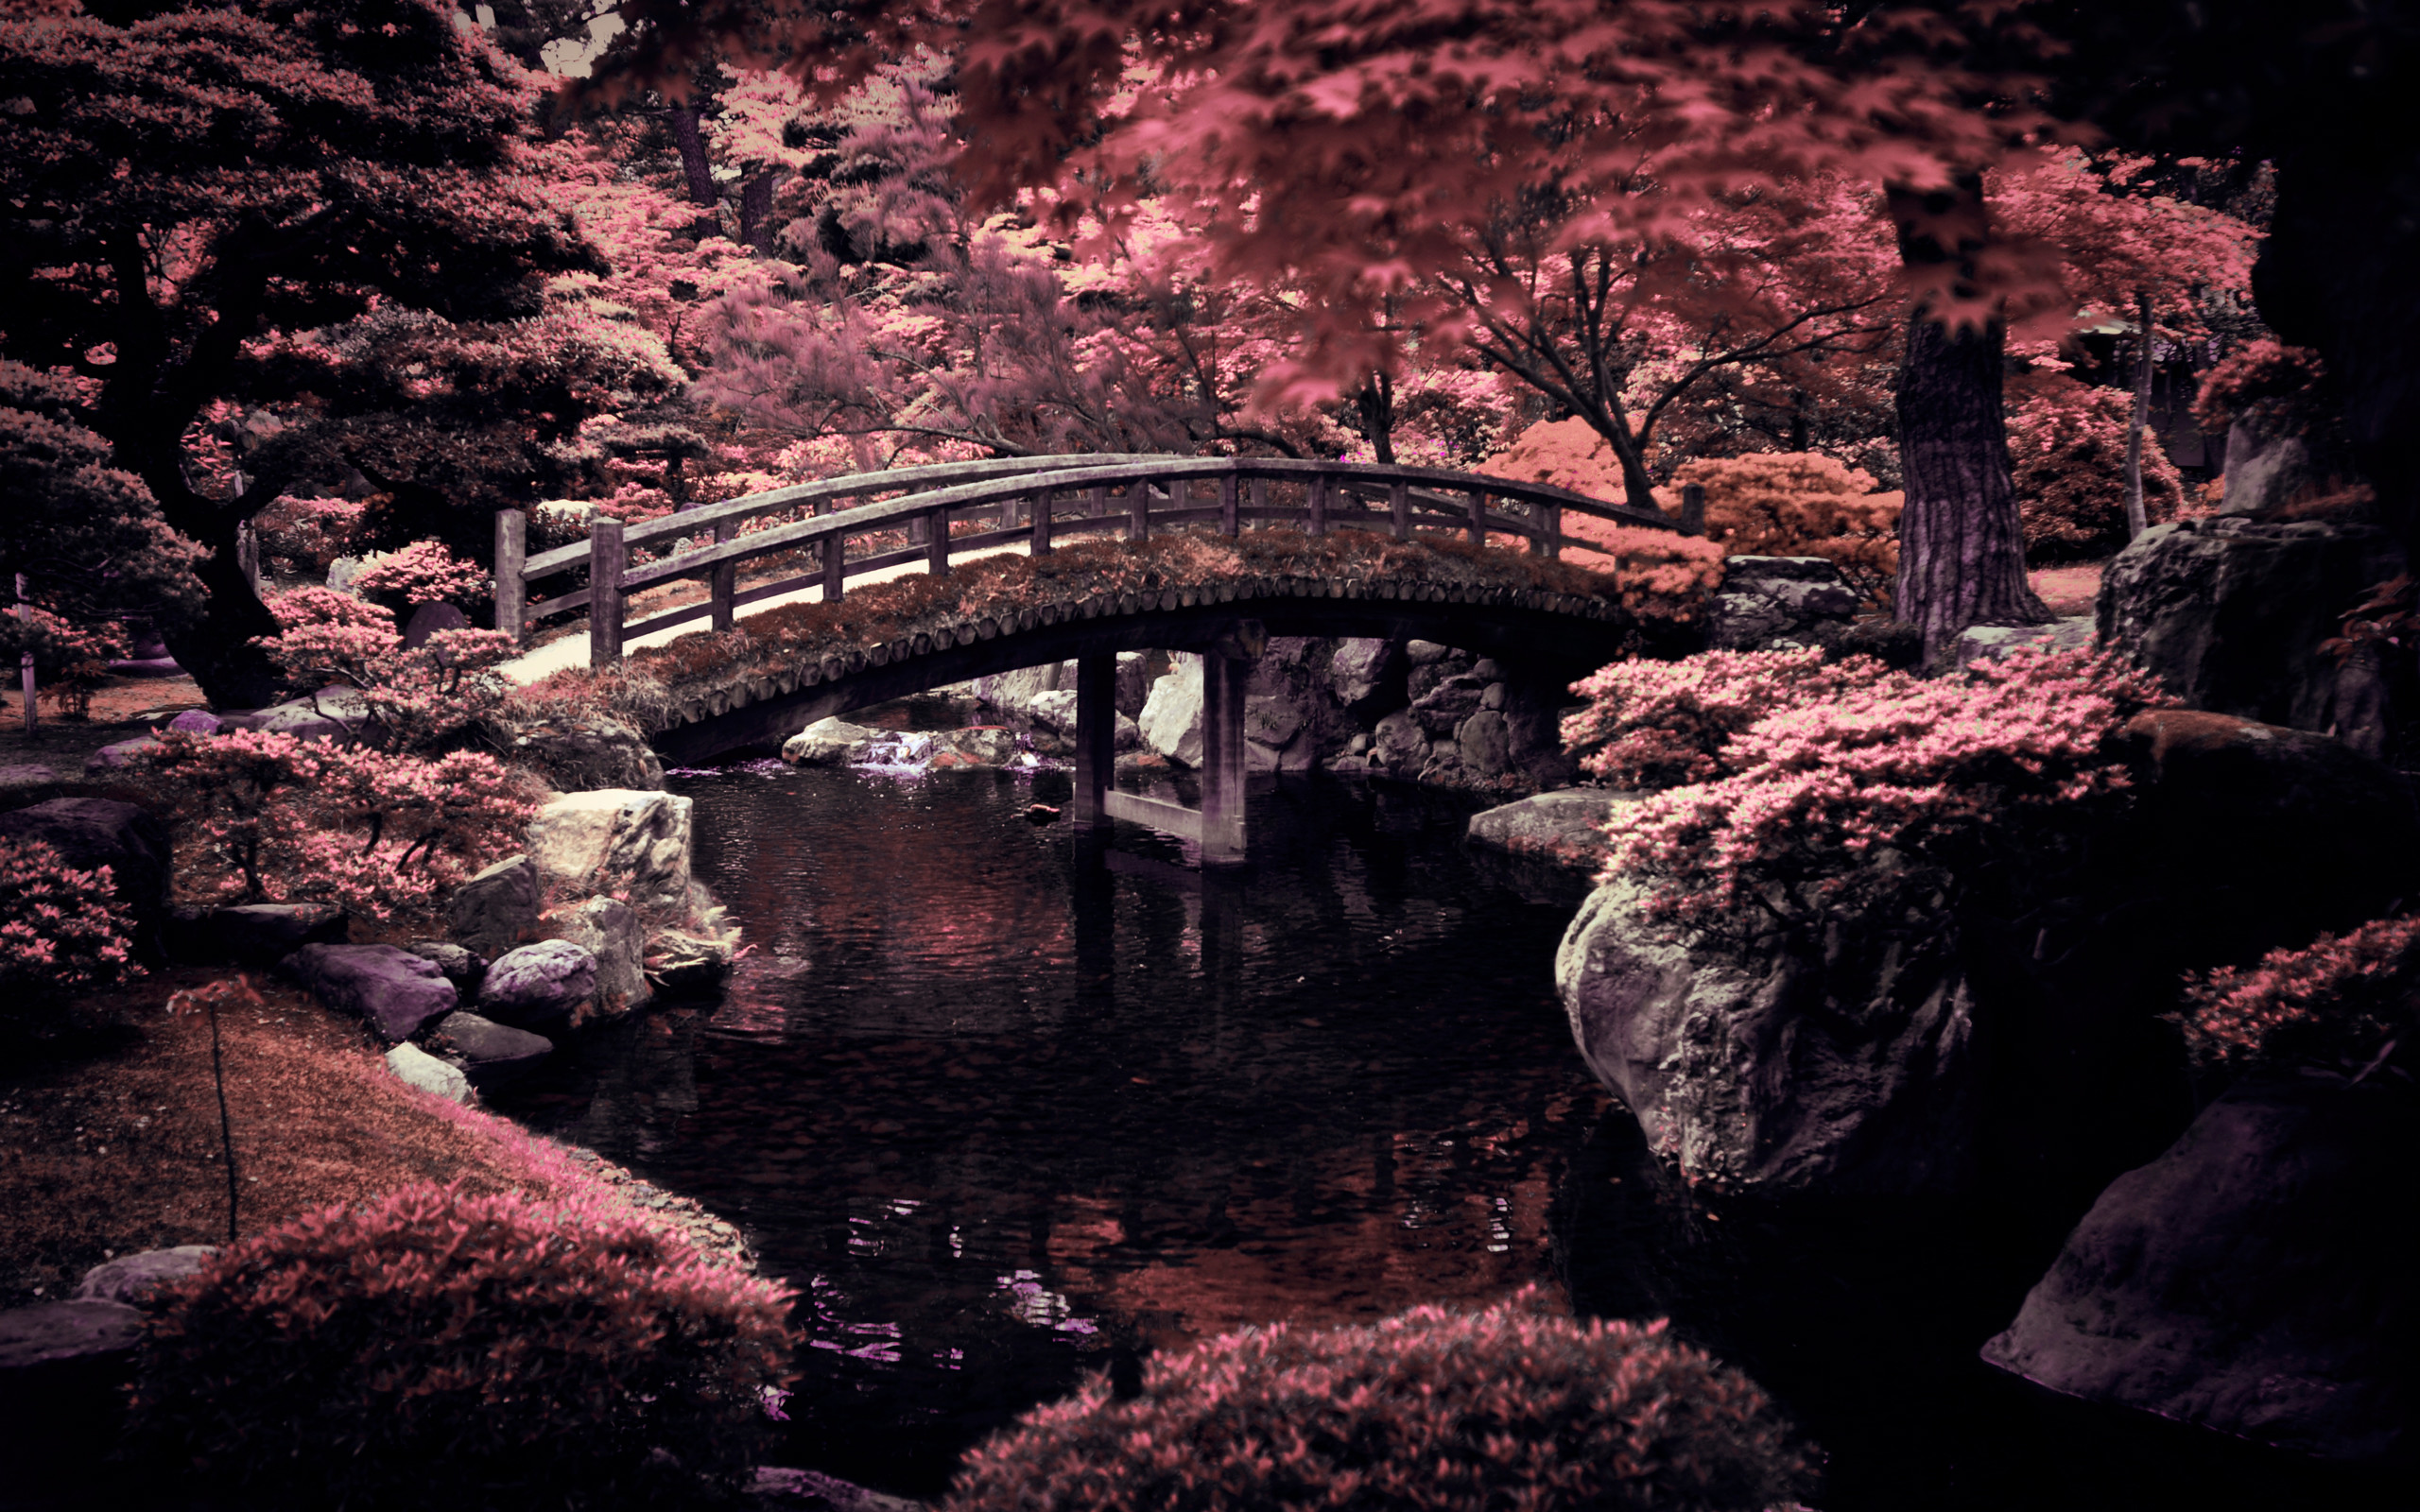 Wallpaper Japan Posted By Michelle Mercado